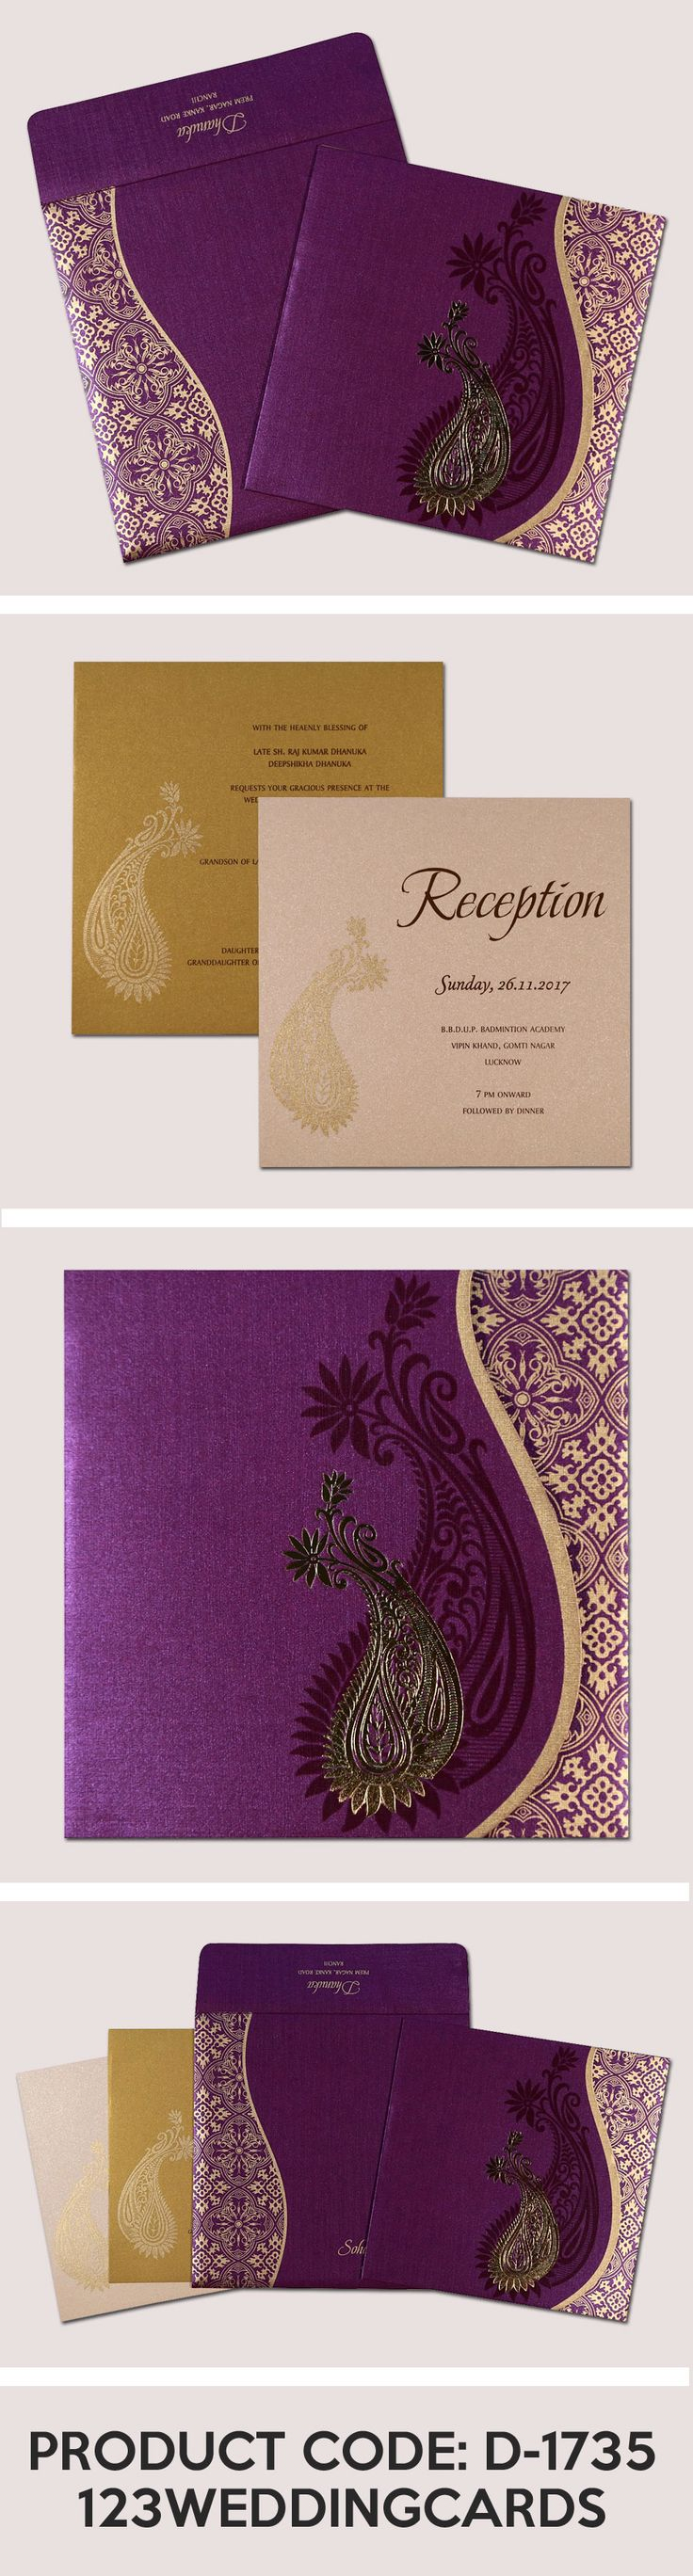 matter for wedding invitation in gujarati%0A Purple shimmery paisley themed  foil stamped wedding invitations   d